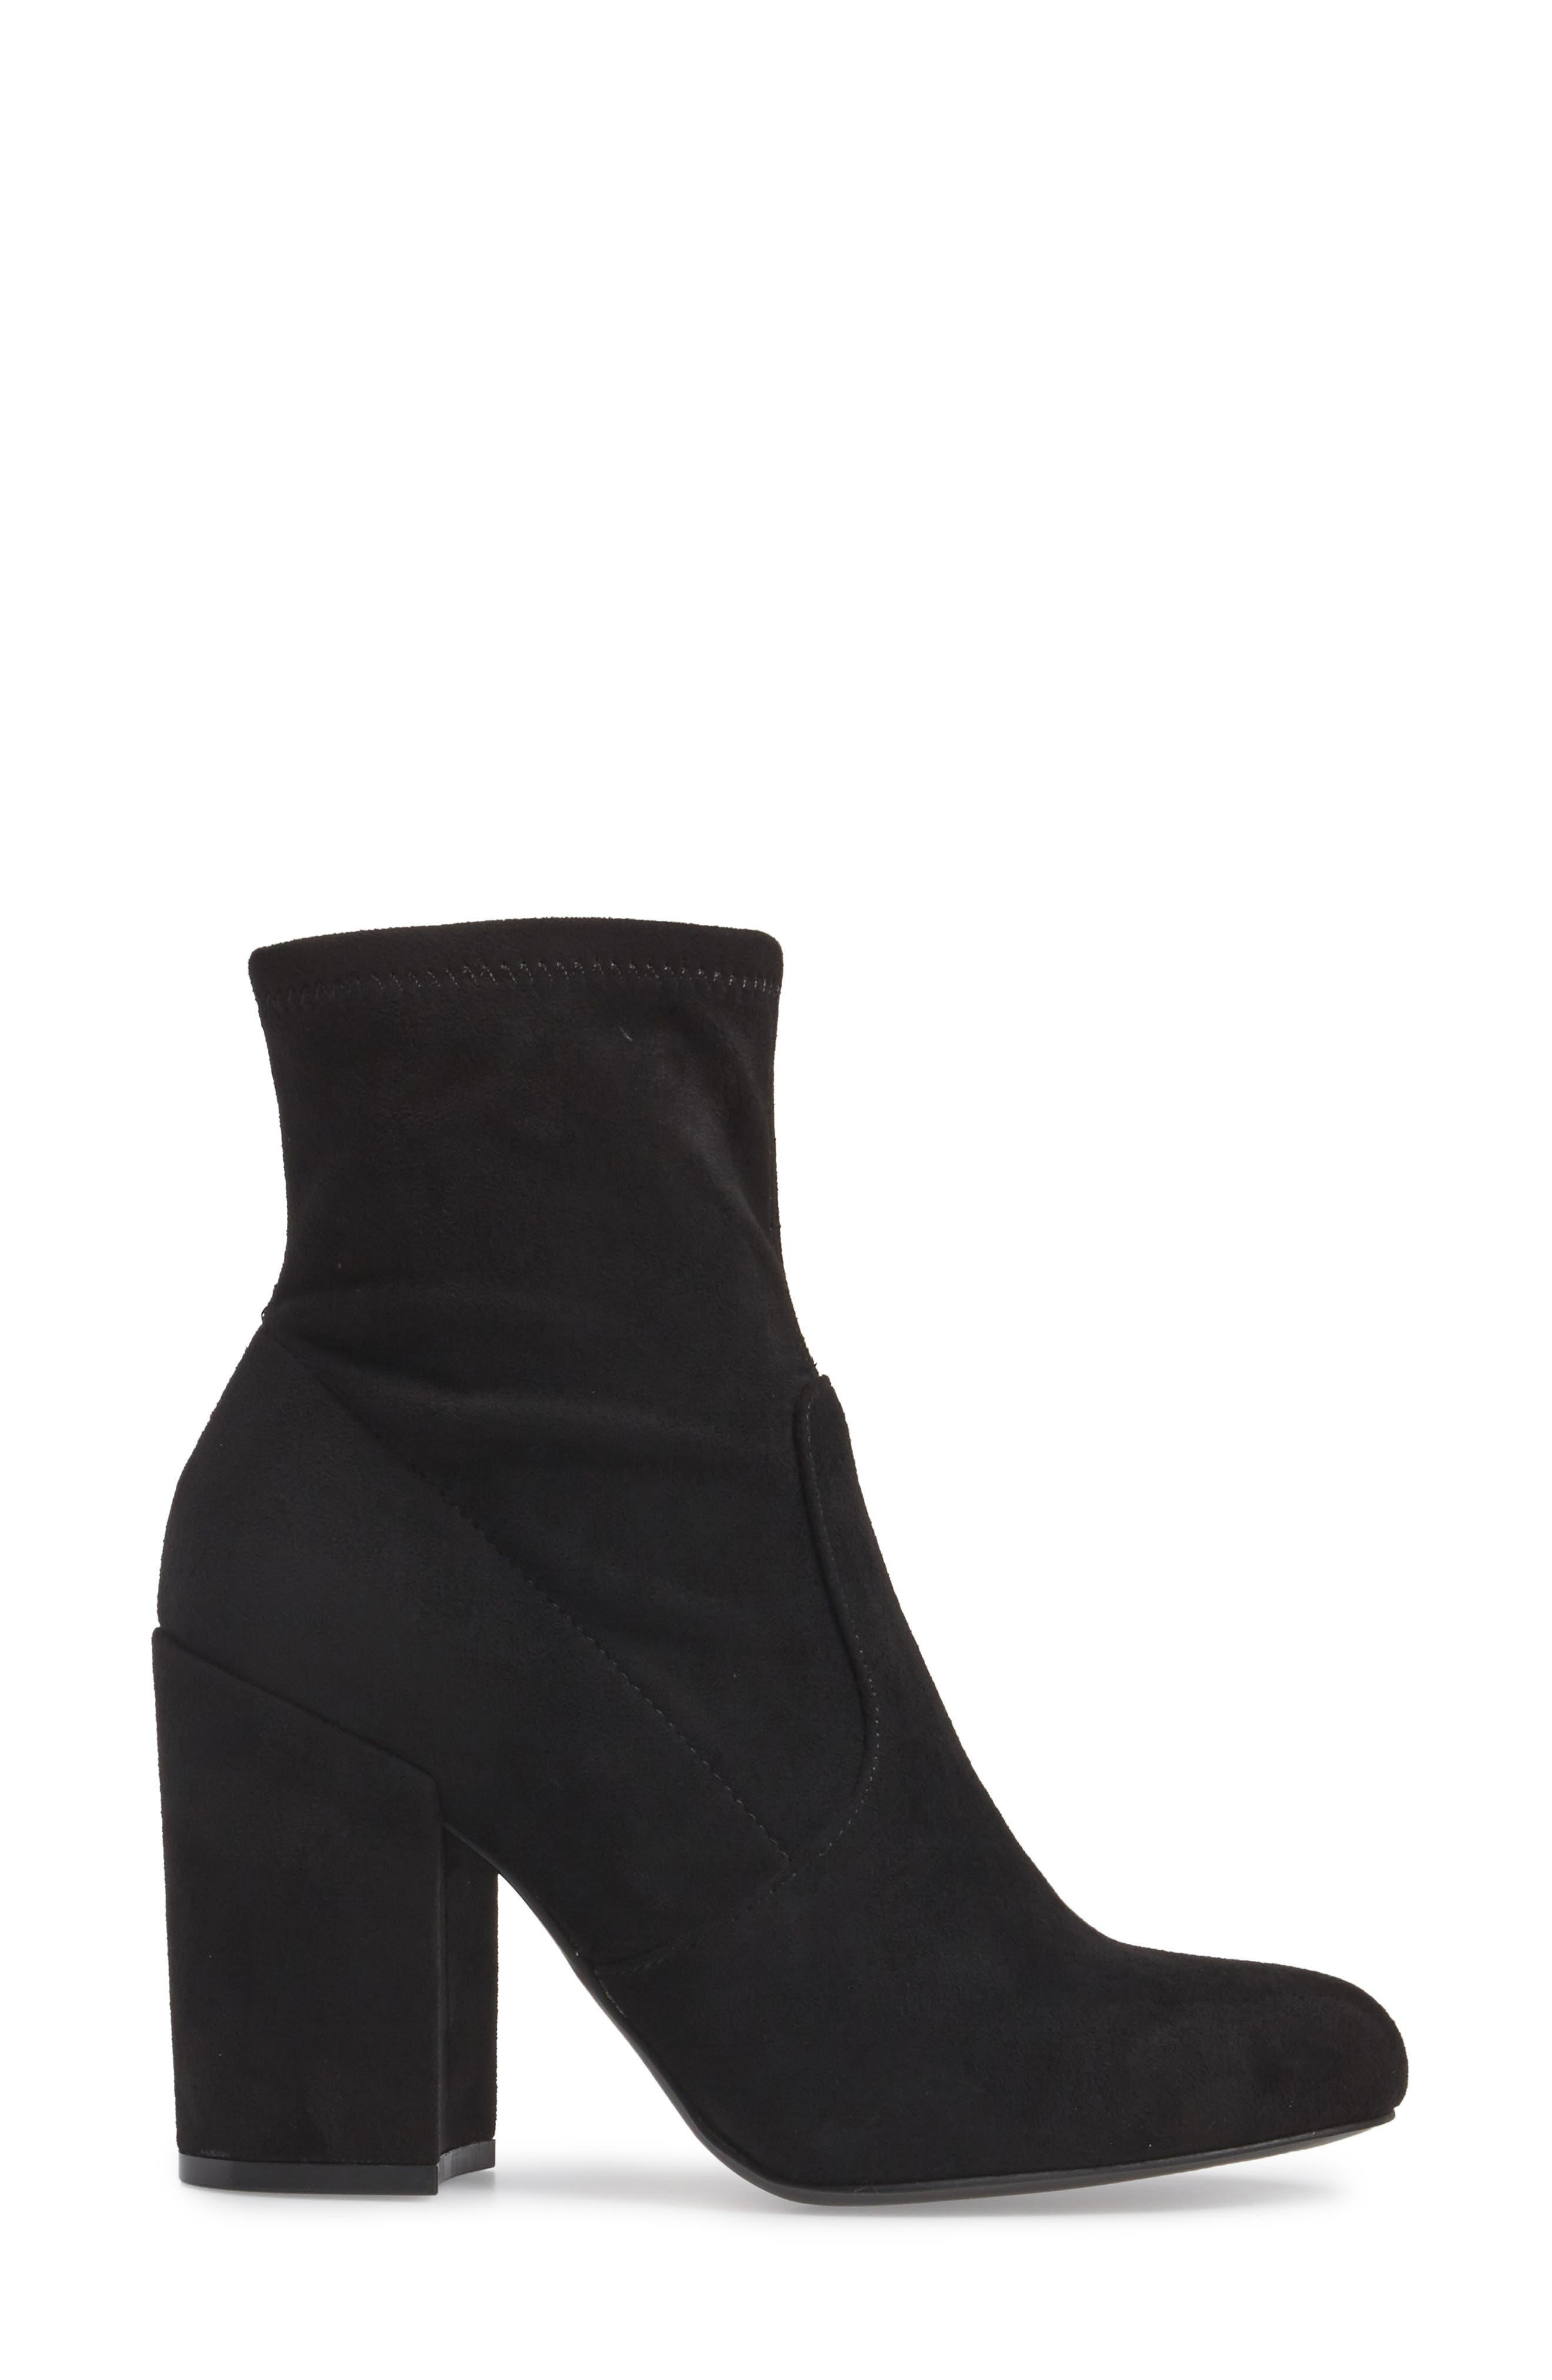 Gaze Bootie,                             Alternate thumbnail 3, color,                             Black Suede